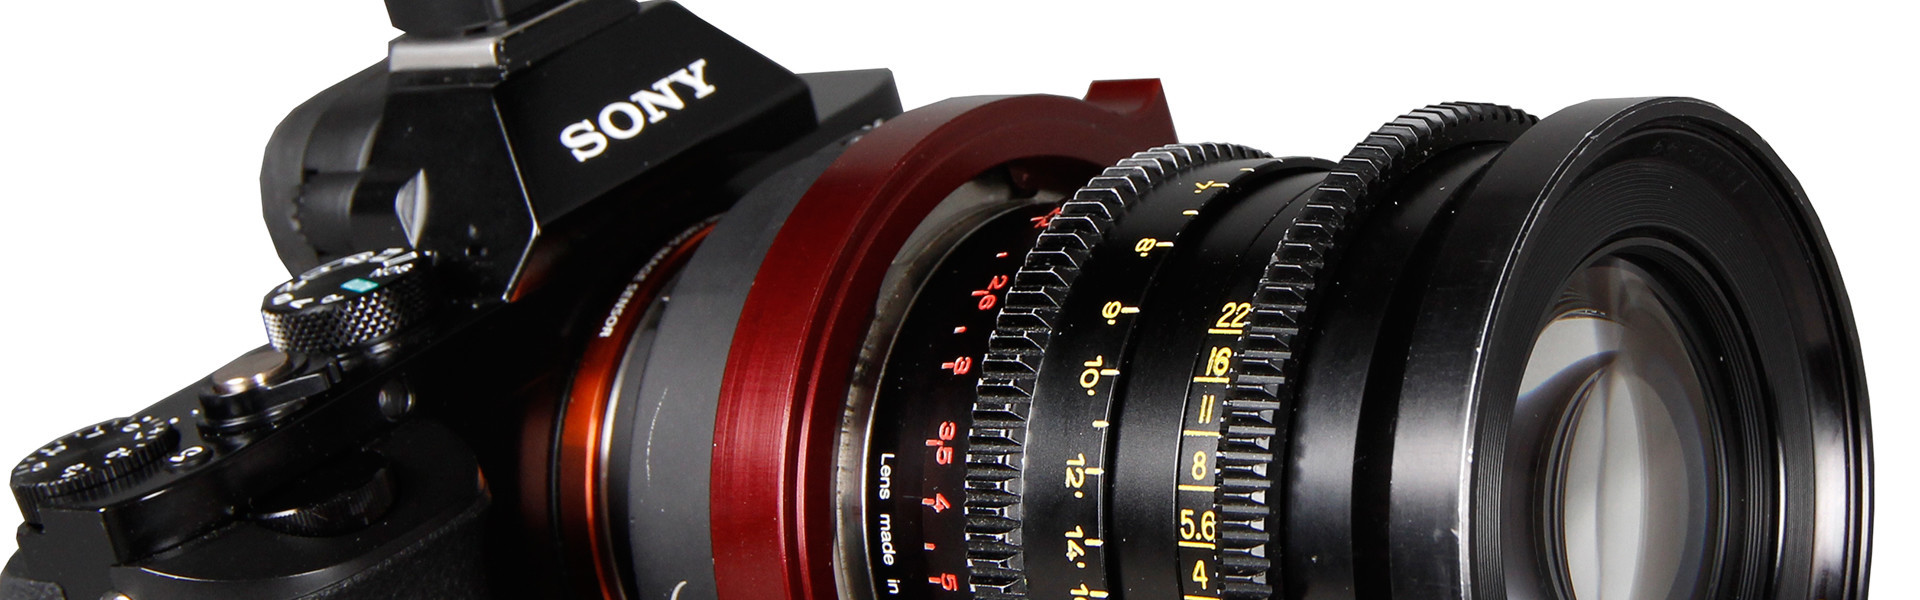 Header image for article Lenses & Accessories for the Sony a7S